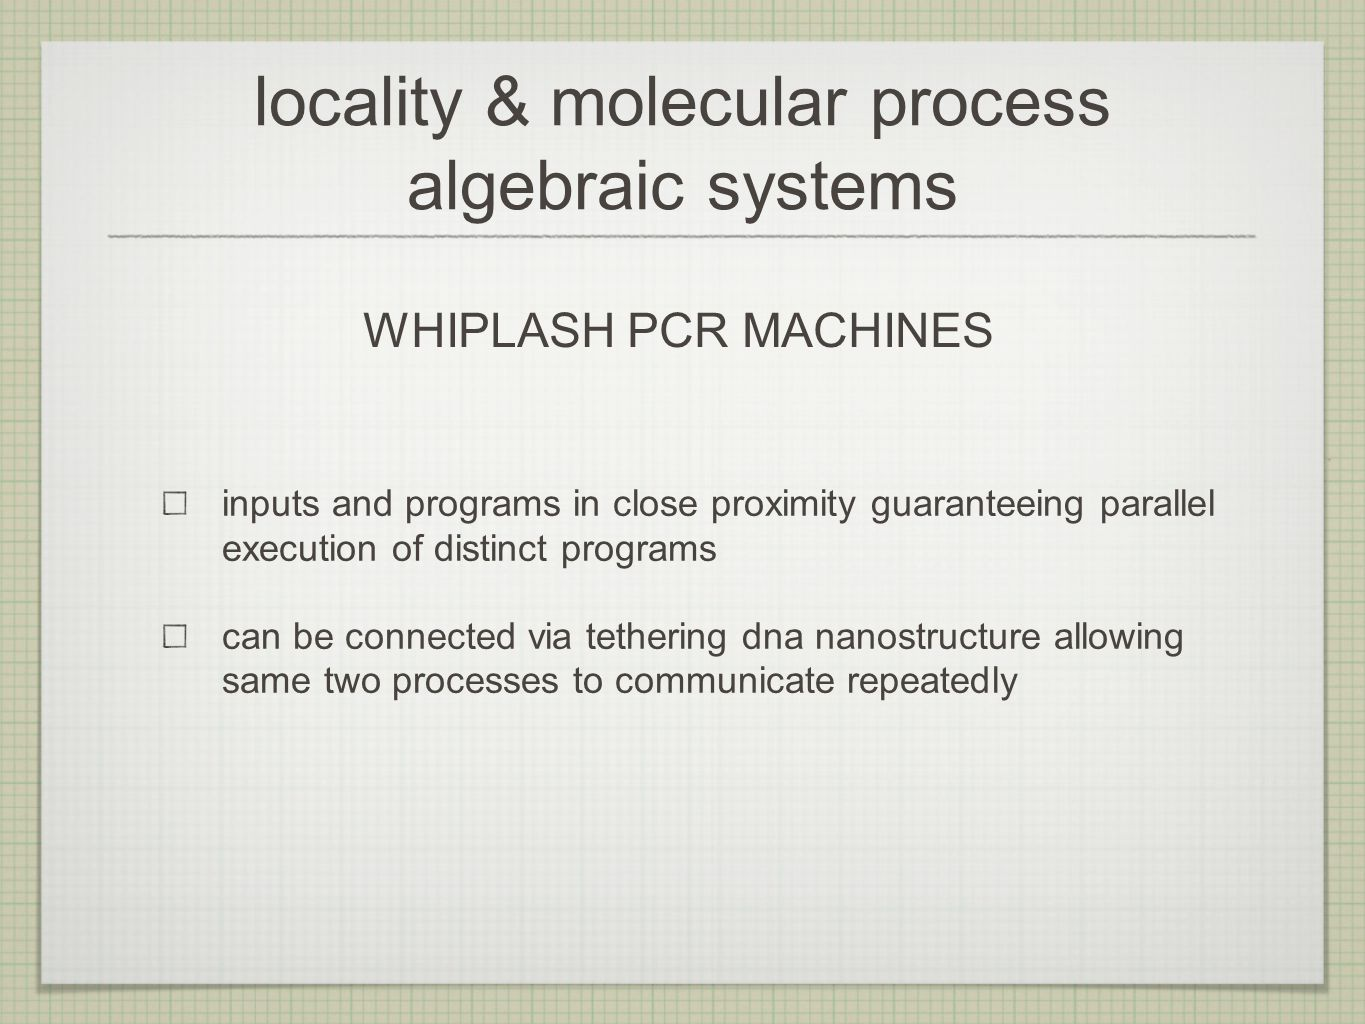 locality & molecular process algebraic systems inputs and programs in close proximity guaranteeing parallel execution of distinct programs can be connected via tethering dna nanostructure allowing same two processes to communicate repeatedly WHIPLASH PCR MACHINES